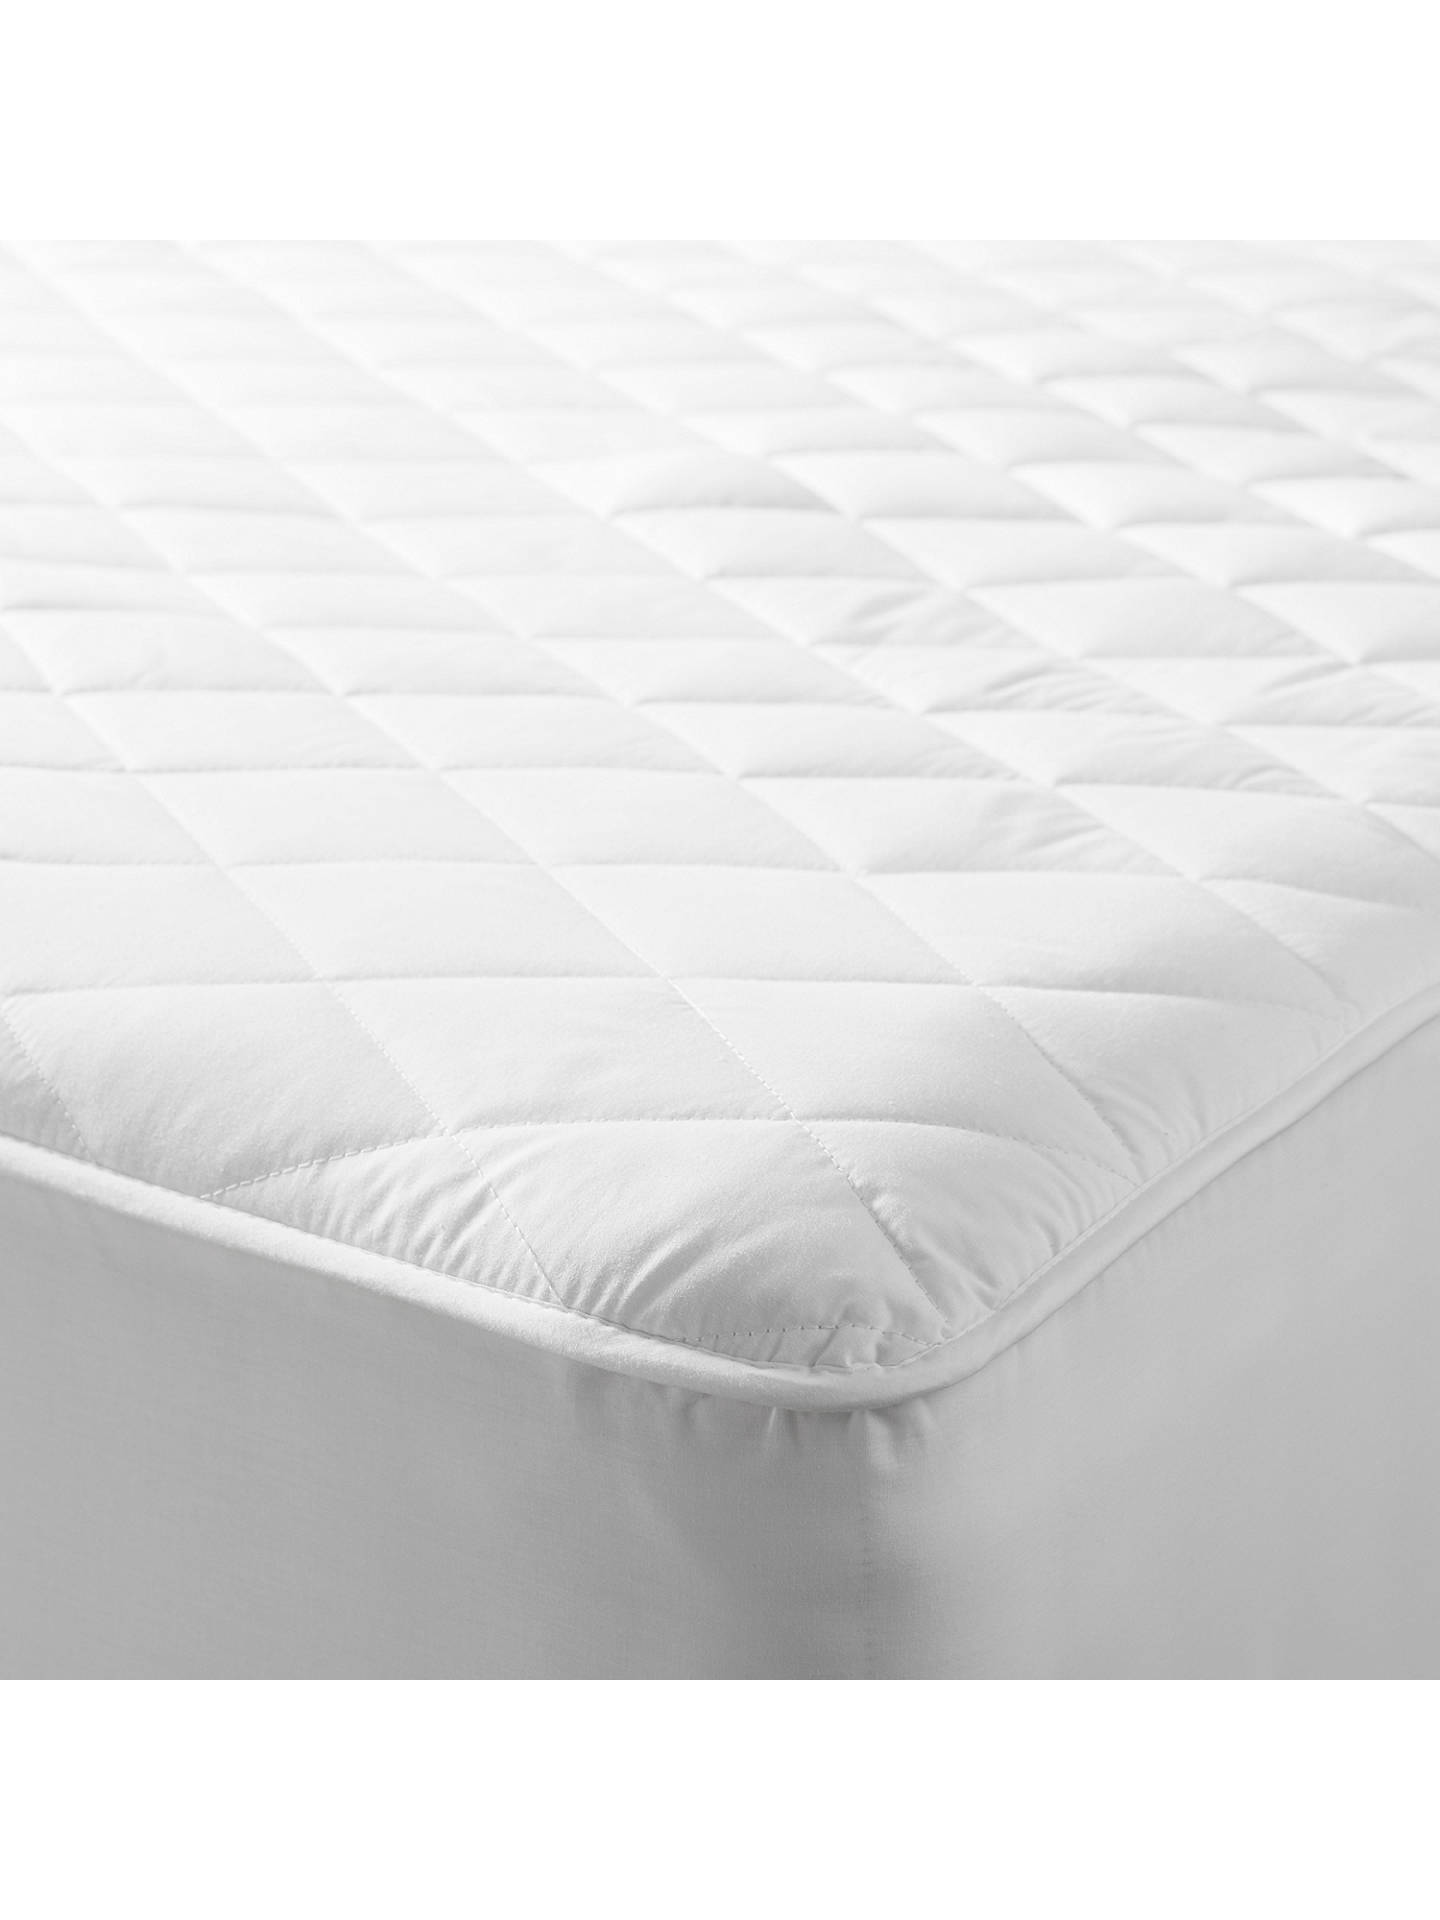 Buy John Lewis & Partners Specialist Synthetic Waterproof Quilted Mattress Protector, Double Online at johnlewis.com